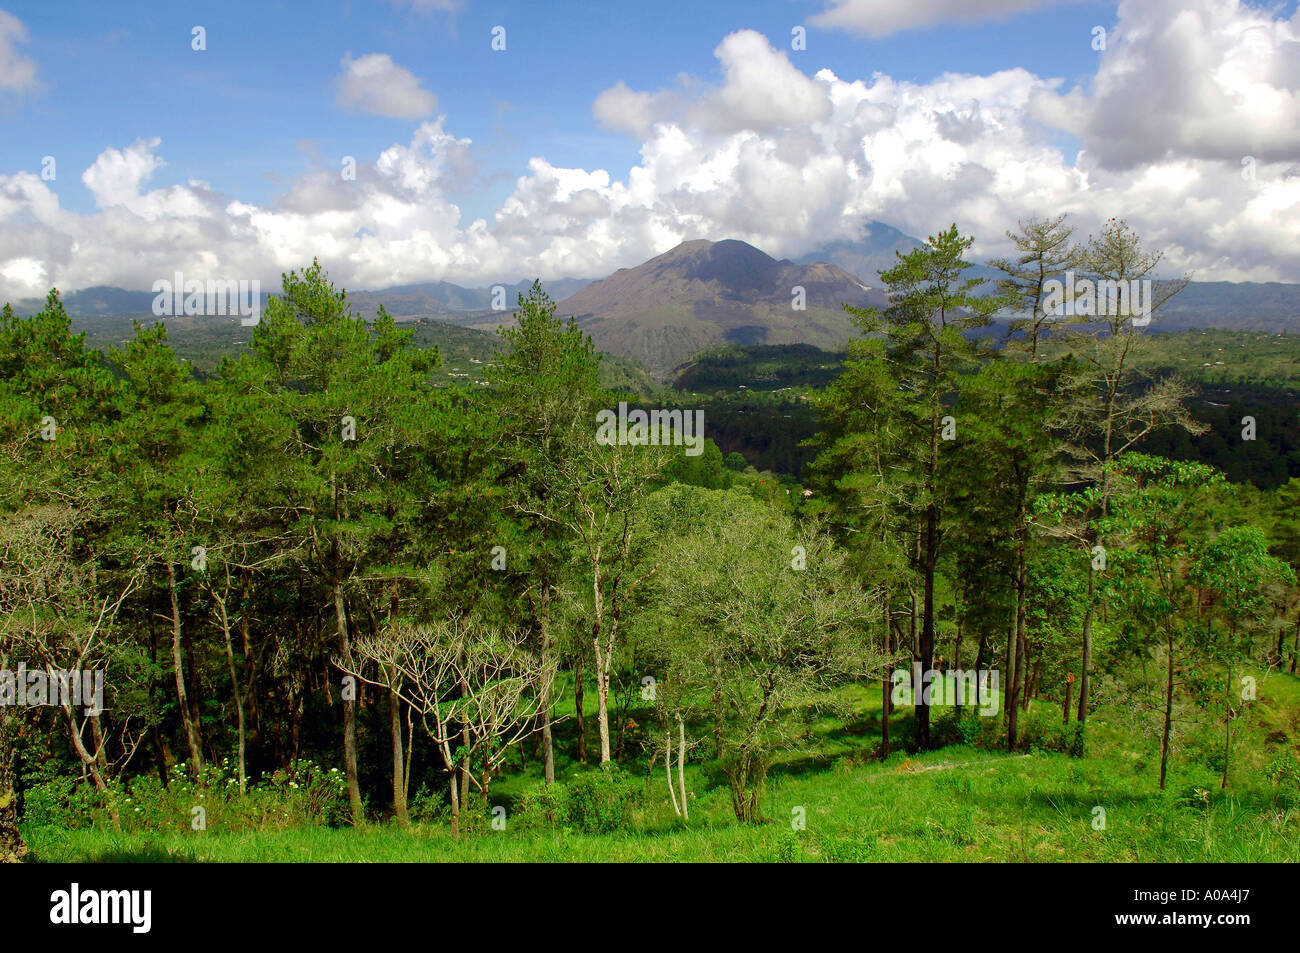 Trees and mountainous skyline, interior of Bali Indonesia with Gunung Lesong, Sangiyang and Batukau - Stock Image